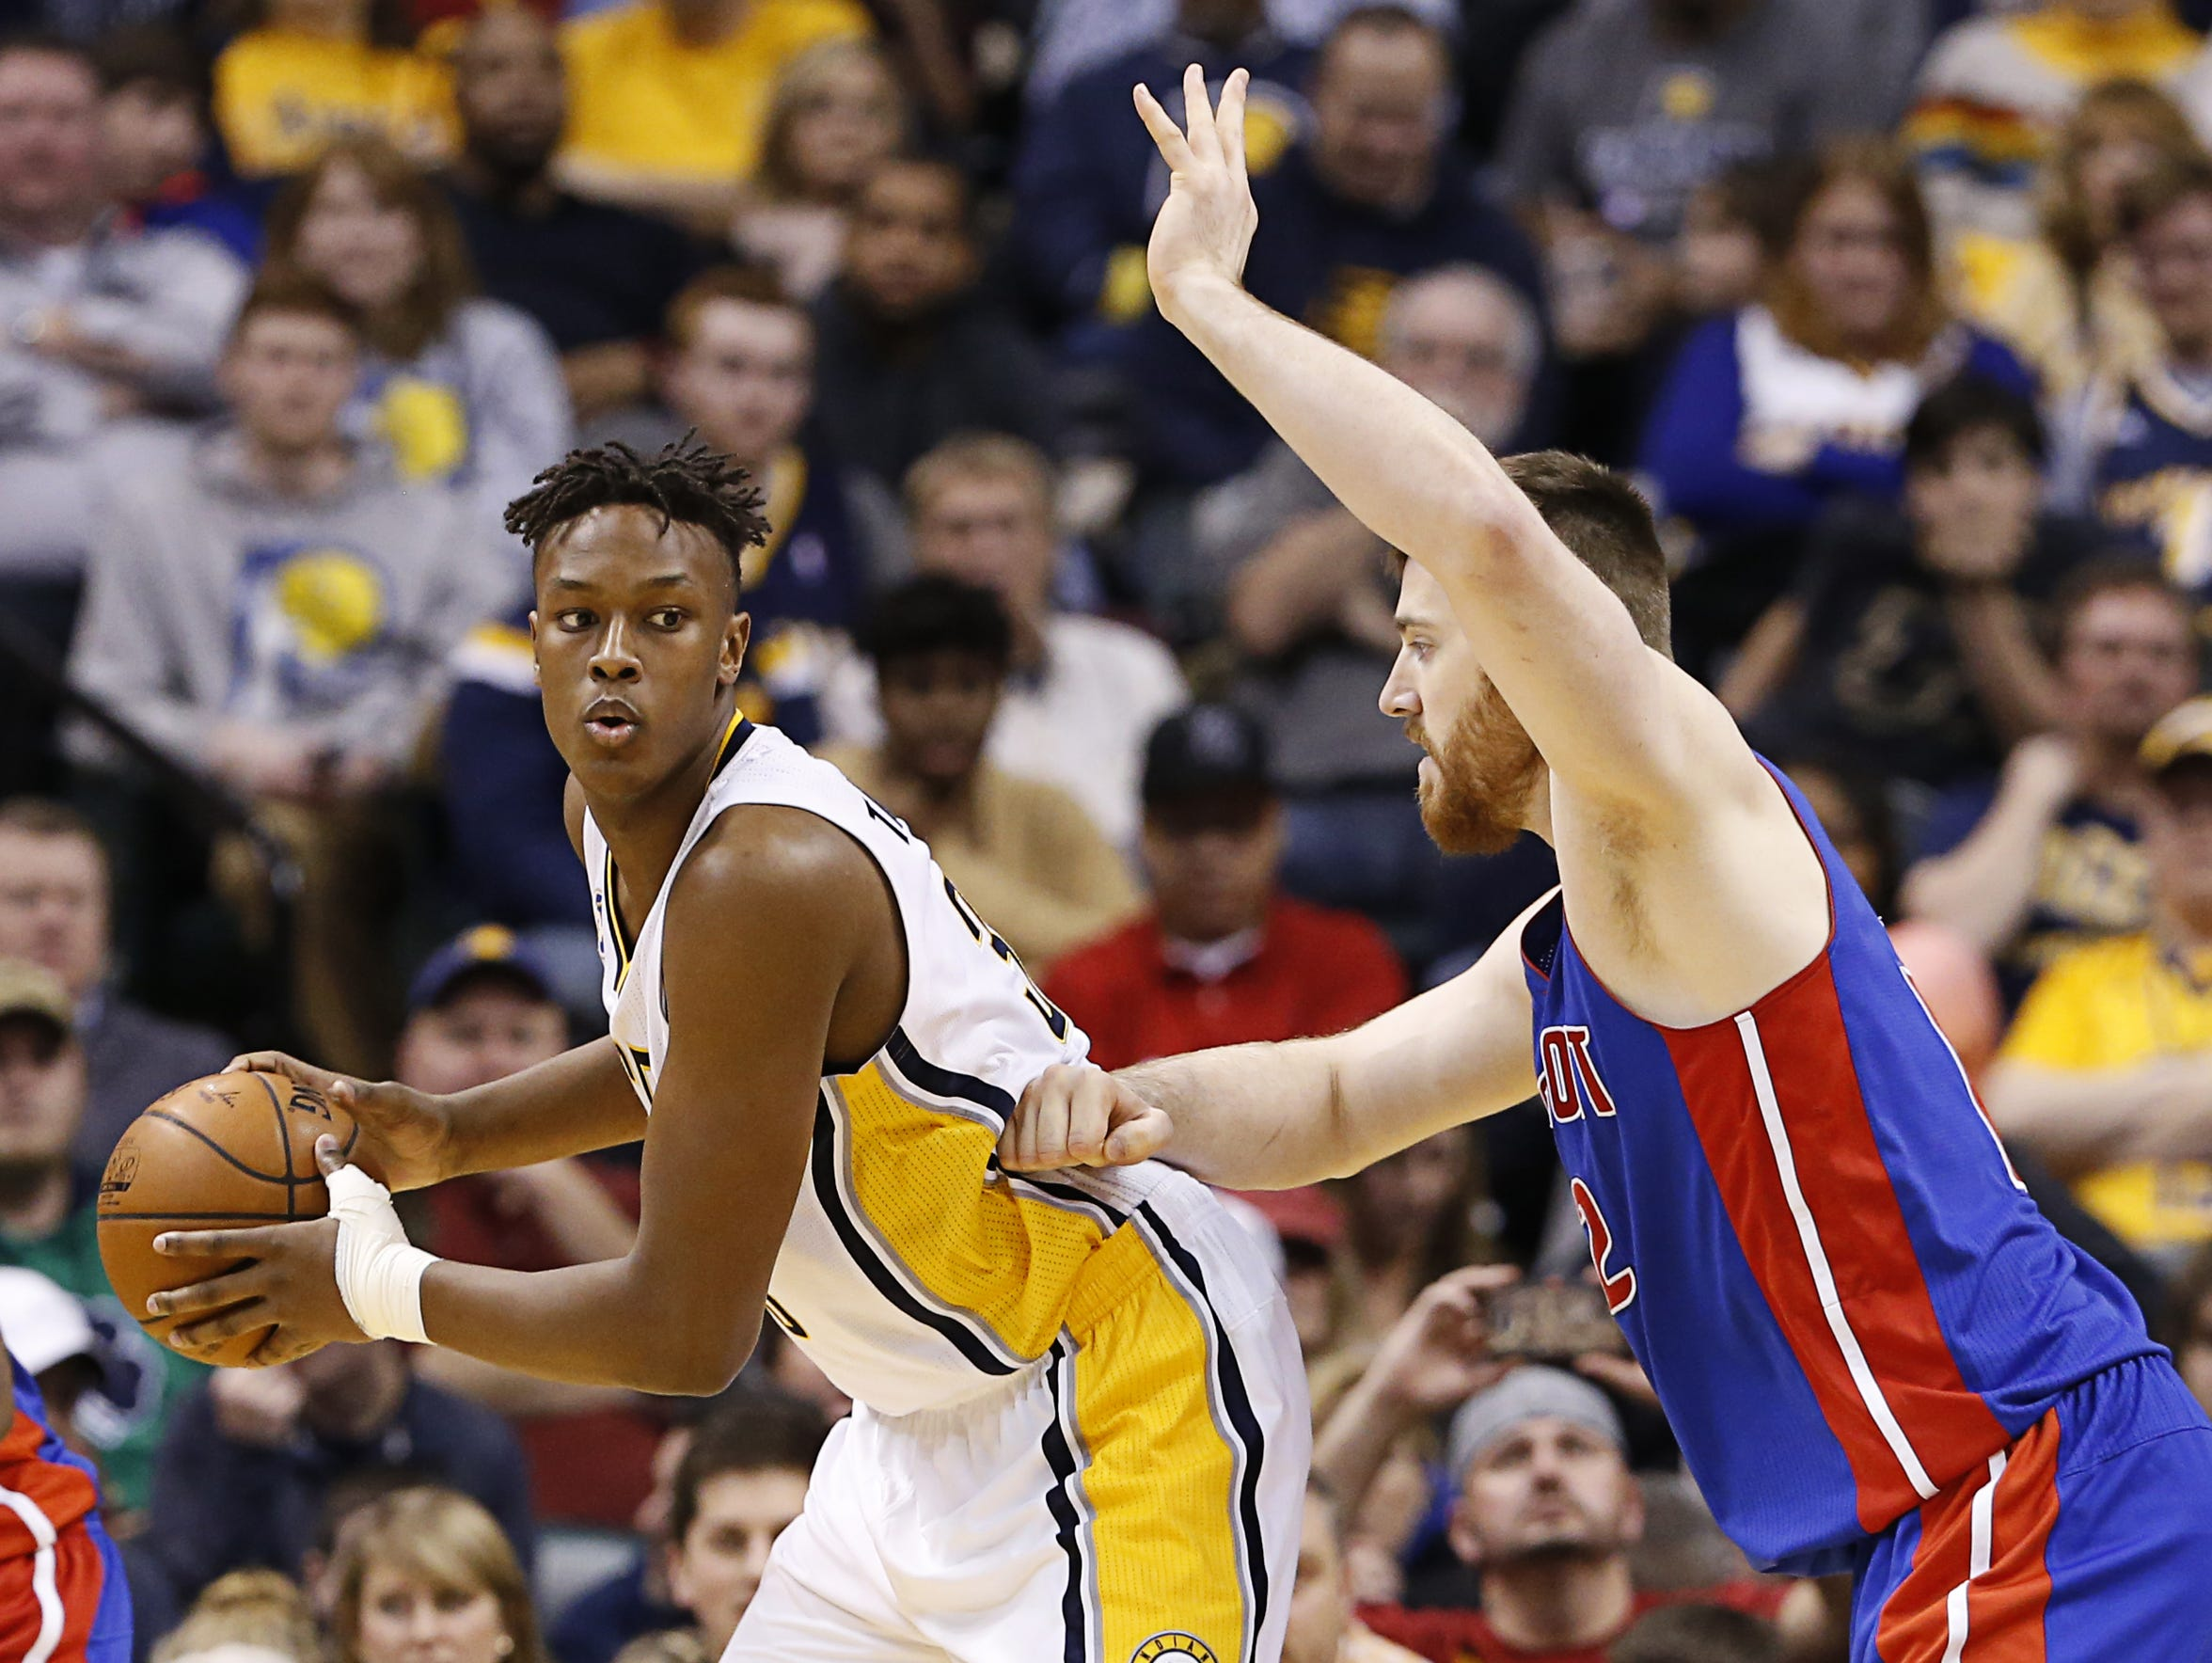 Myles Turner has exceeded many fans' expectations in